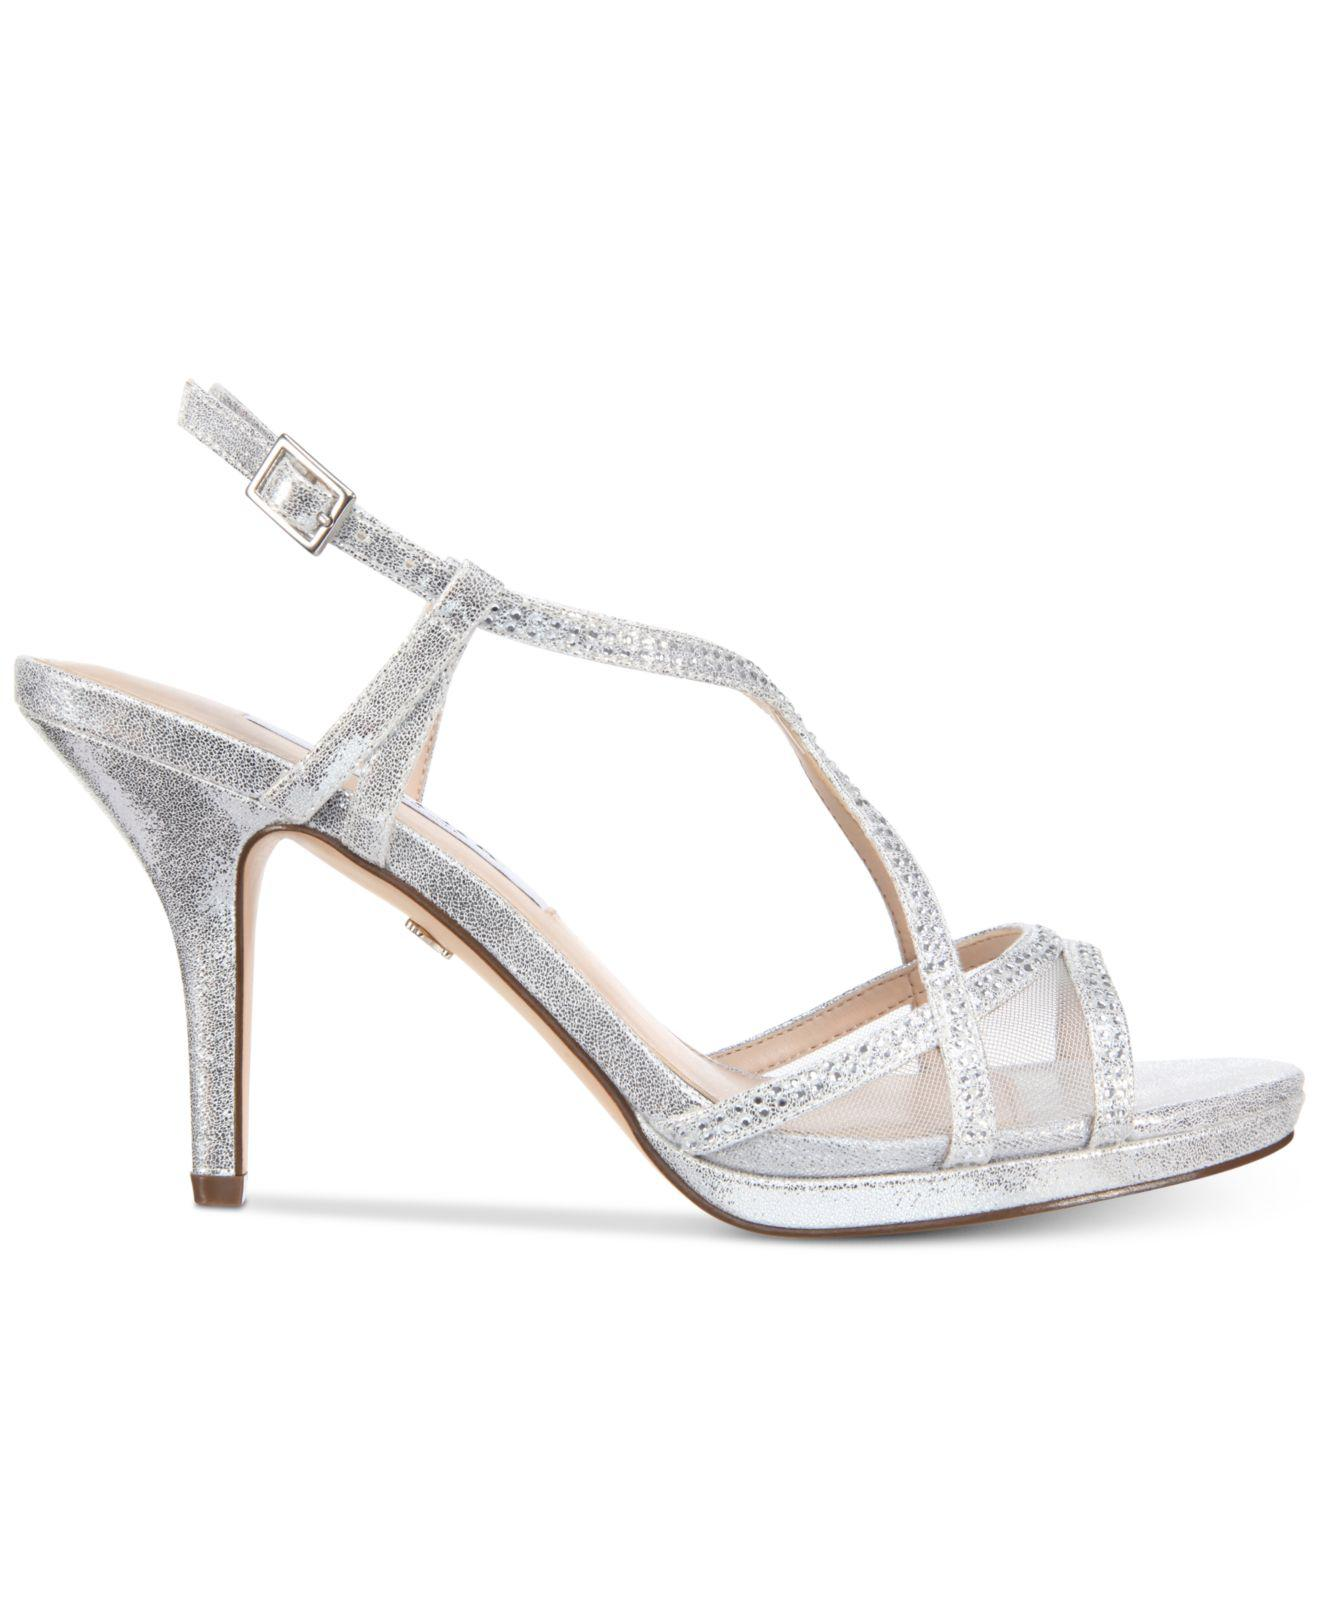 617f15f0200 Lyst - Nina Blossom Strappy Embellished Evening Sandals in Metallic